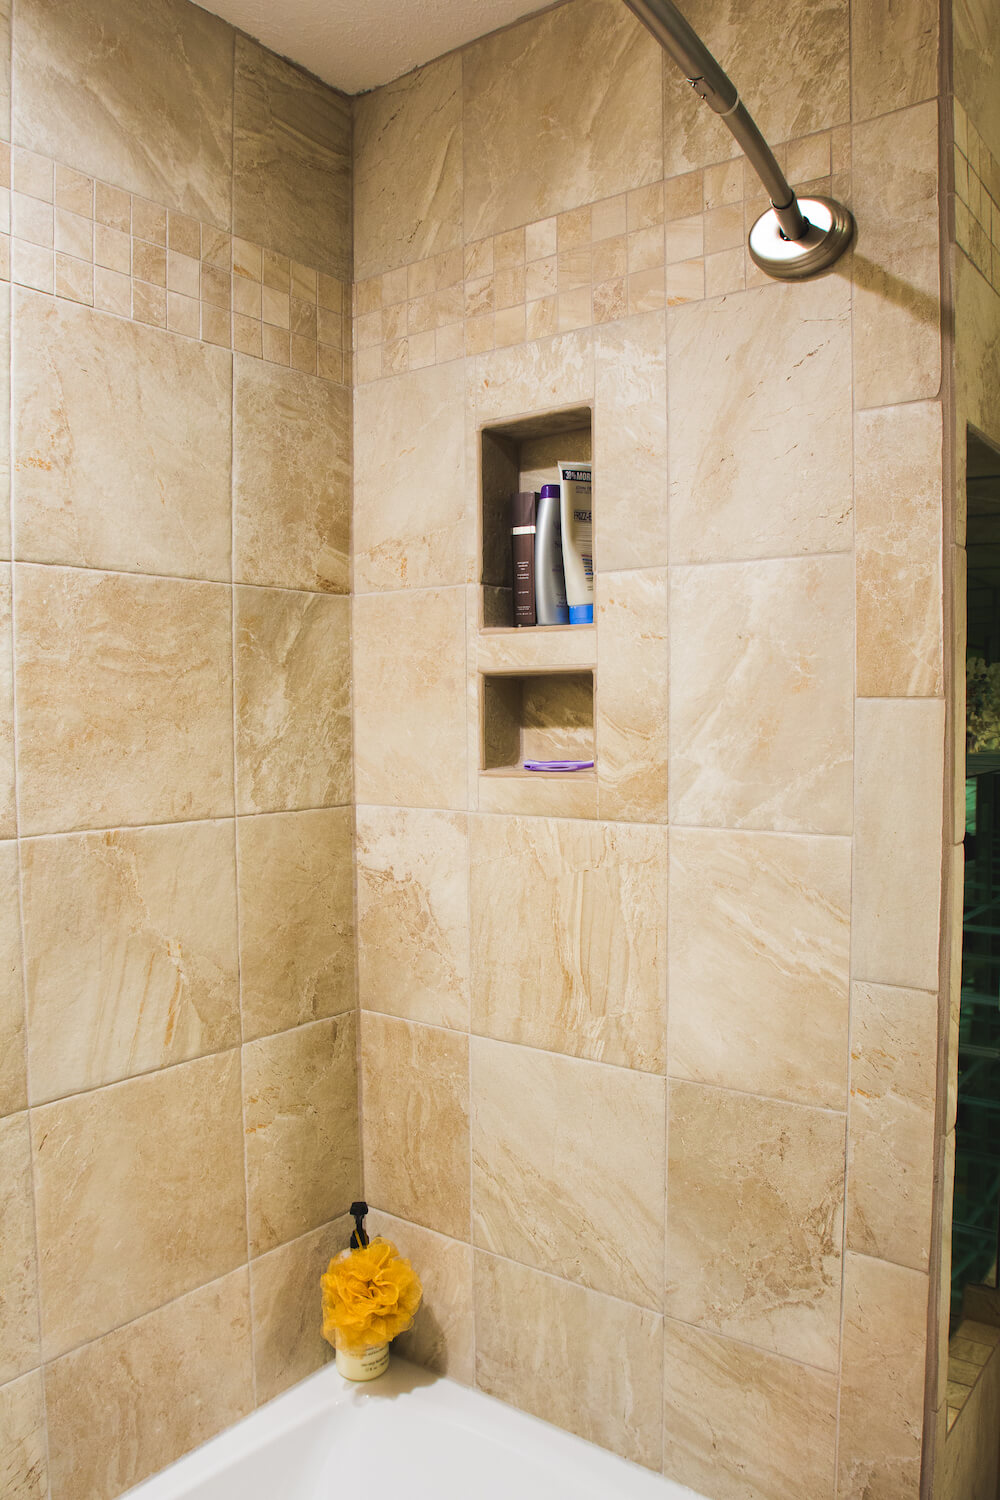 2019 Cost To Tile A Shower How Much To Tile A Shower Shower Tile Bathroom Shower Tile Tile Bathroom